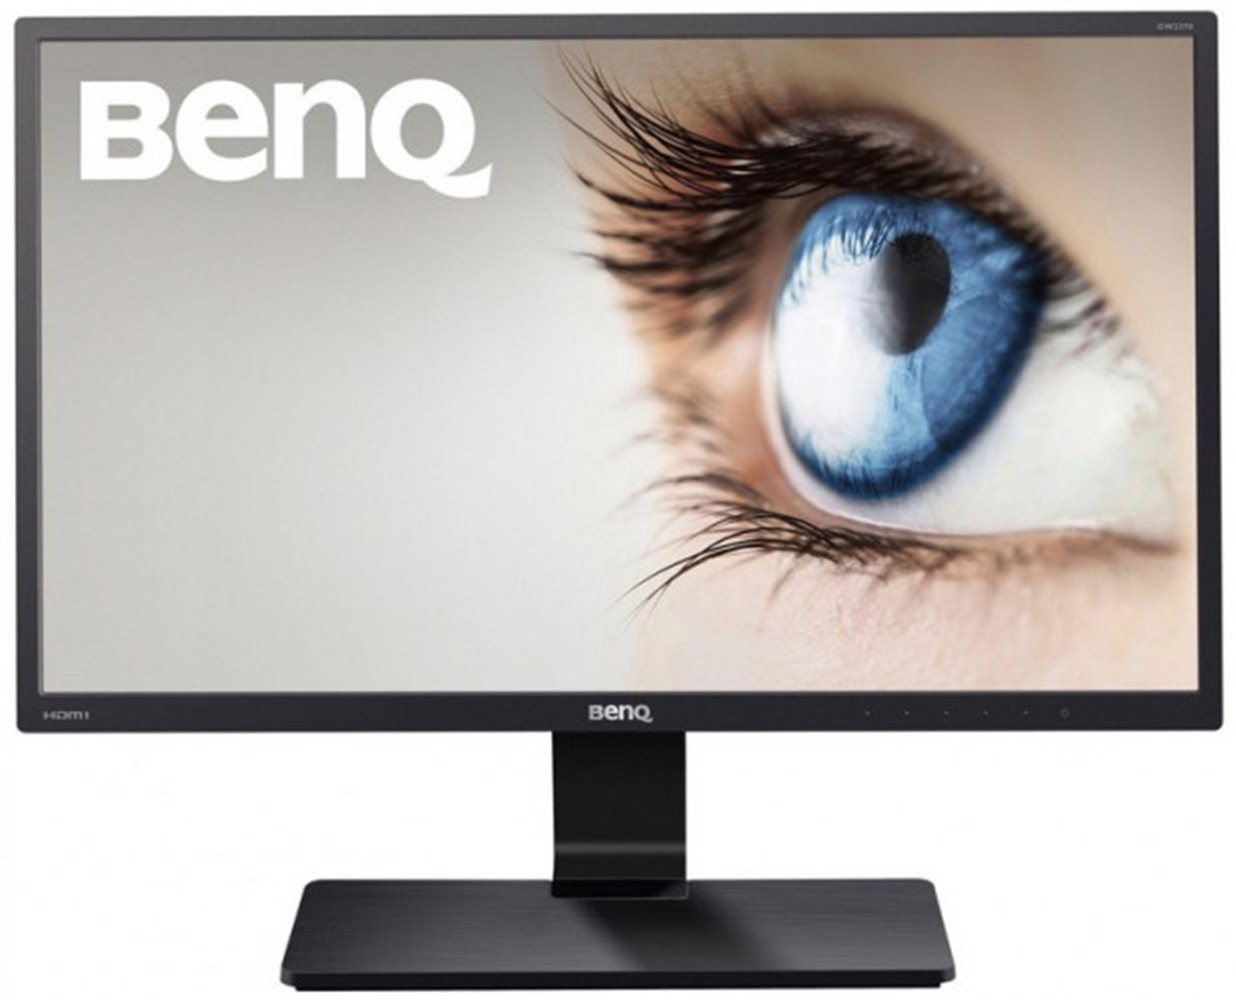 "BenQ LCD GL2580H Black 24,5""W/TN LED/FHD/12M:1/2ms/DVI/HDMI/Flicker-free/Low Blue Light"